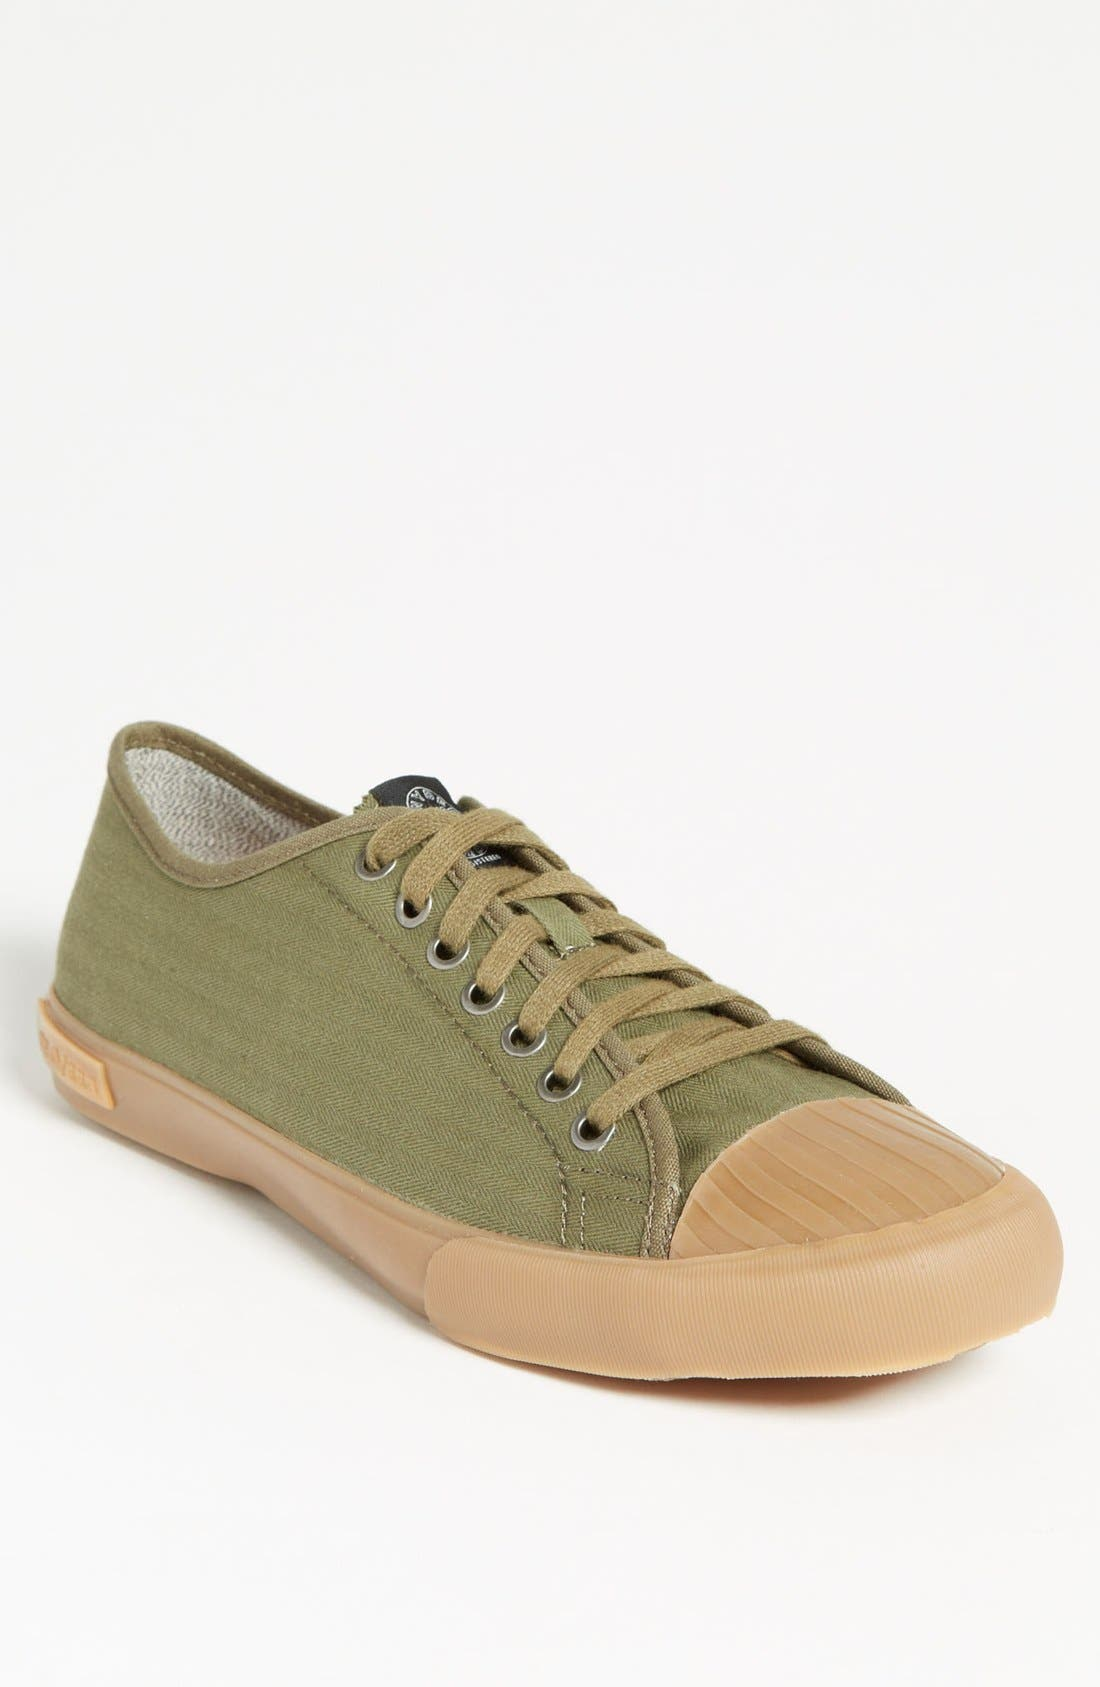 Alternate Image 1 Selected - SeaVees '08/61 Army Issue' Low Sneaker